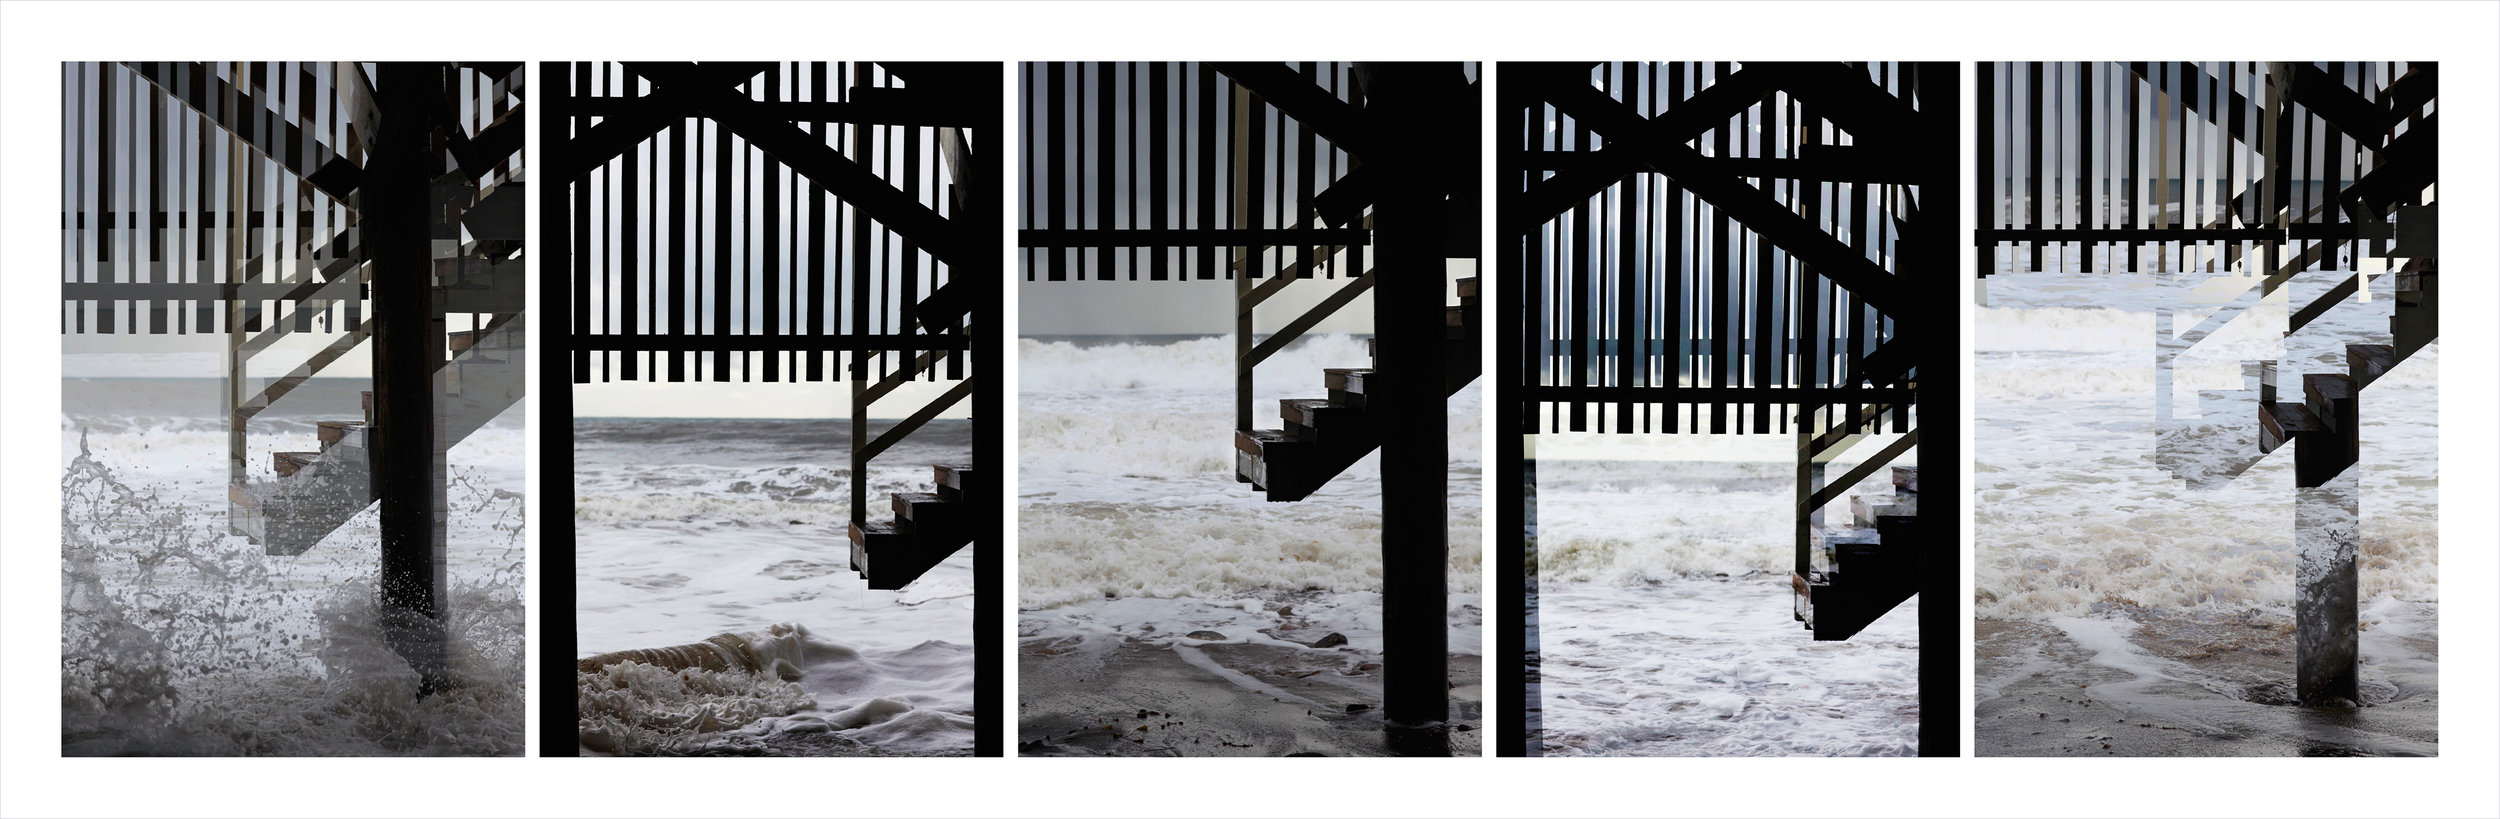 Untitled #31   (Nowhere)  , 2012/ archival pigment   print, 14  x 43 inches  ,  edition of 3 plus 2 AP